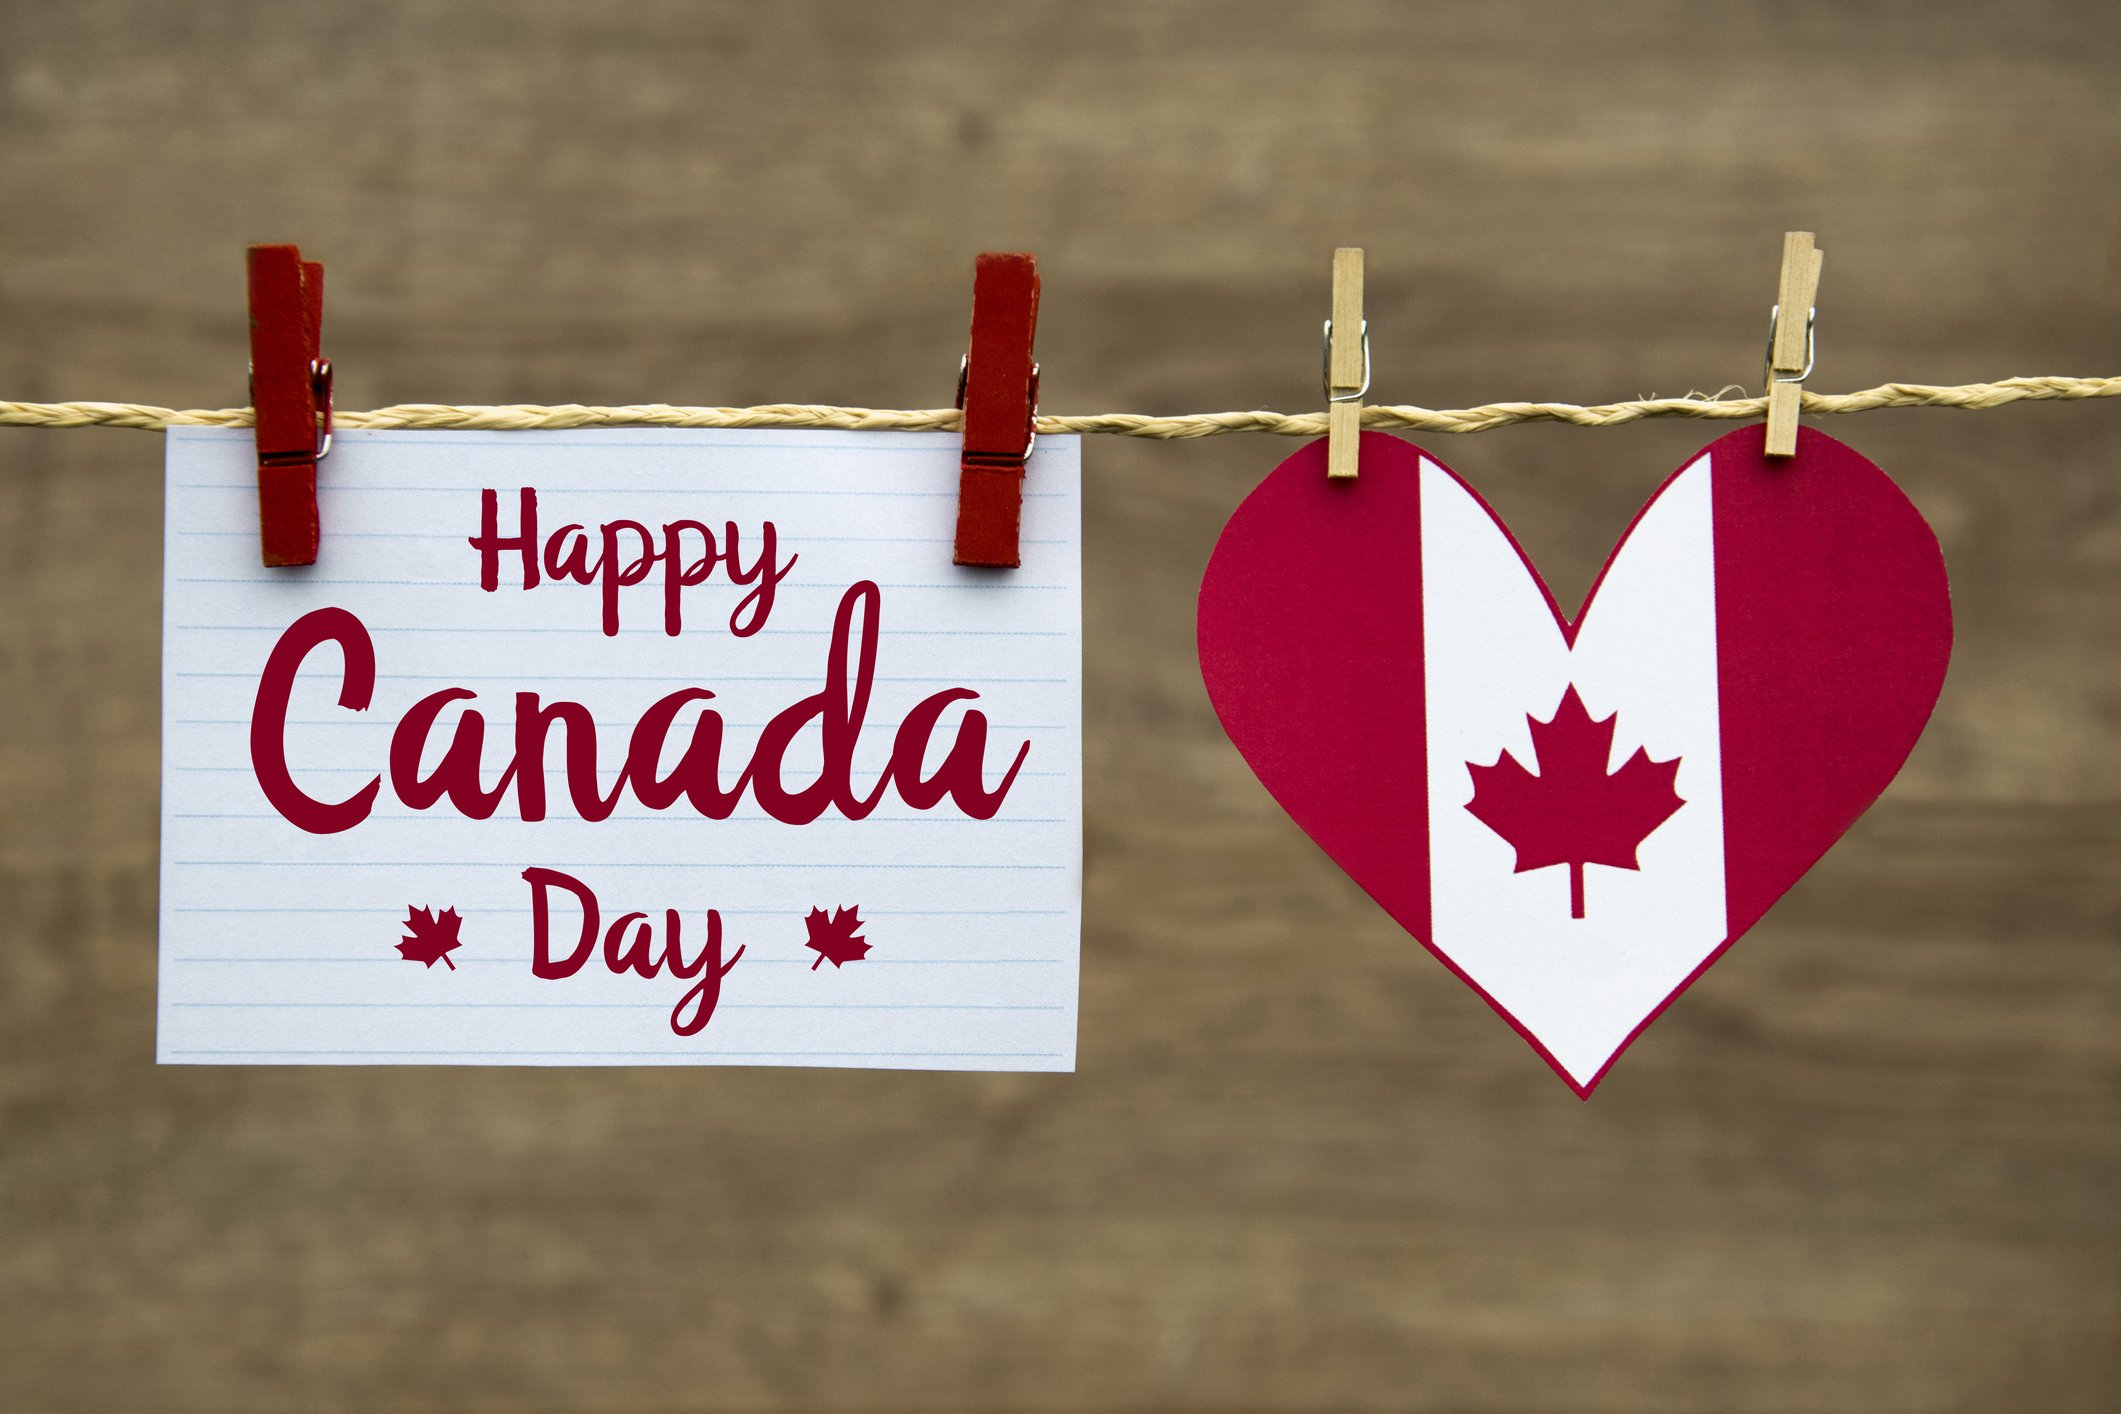 Canada day heart images